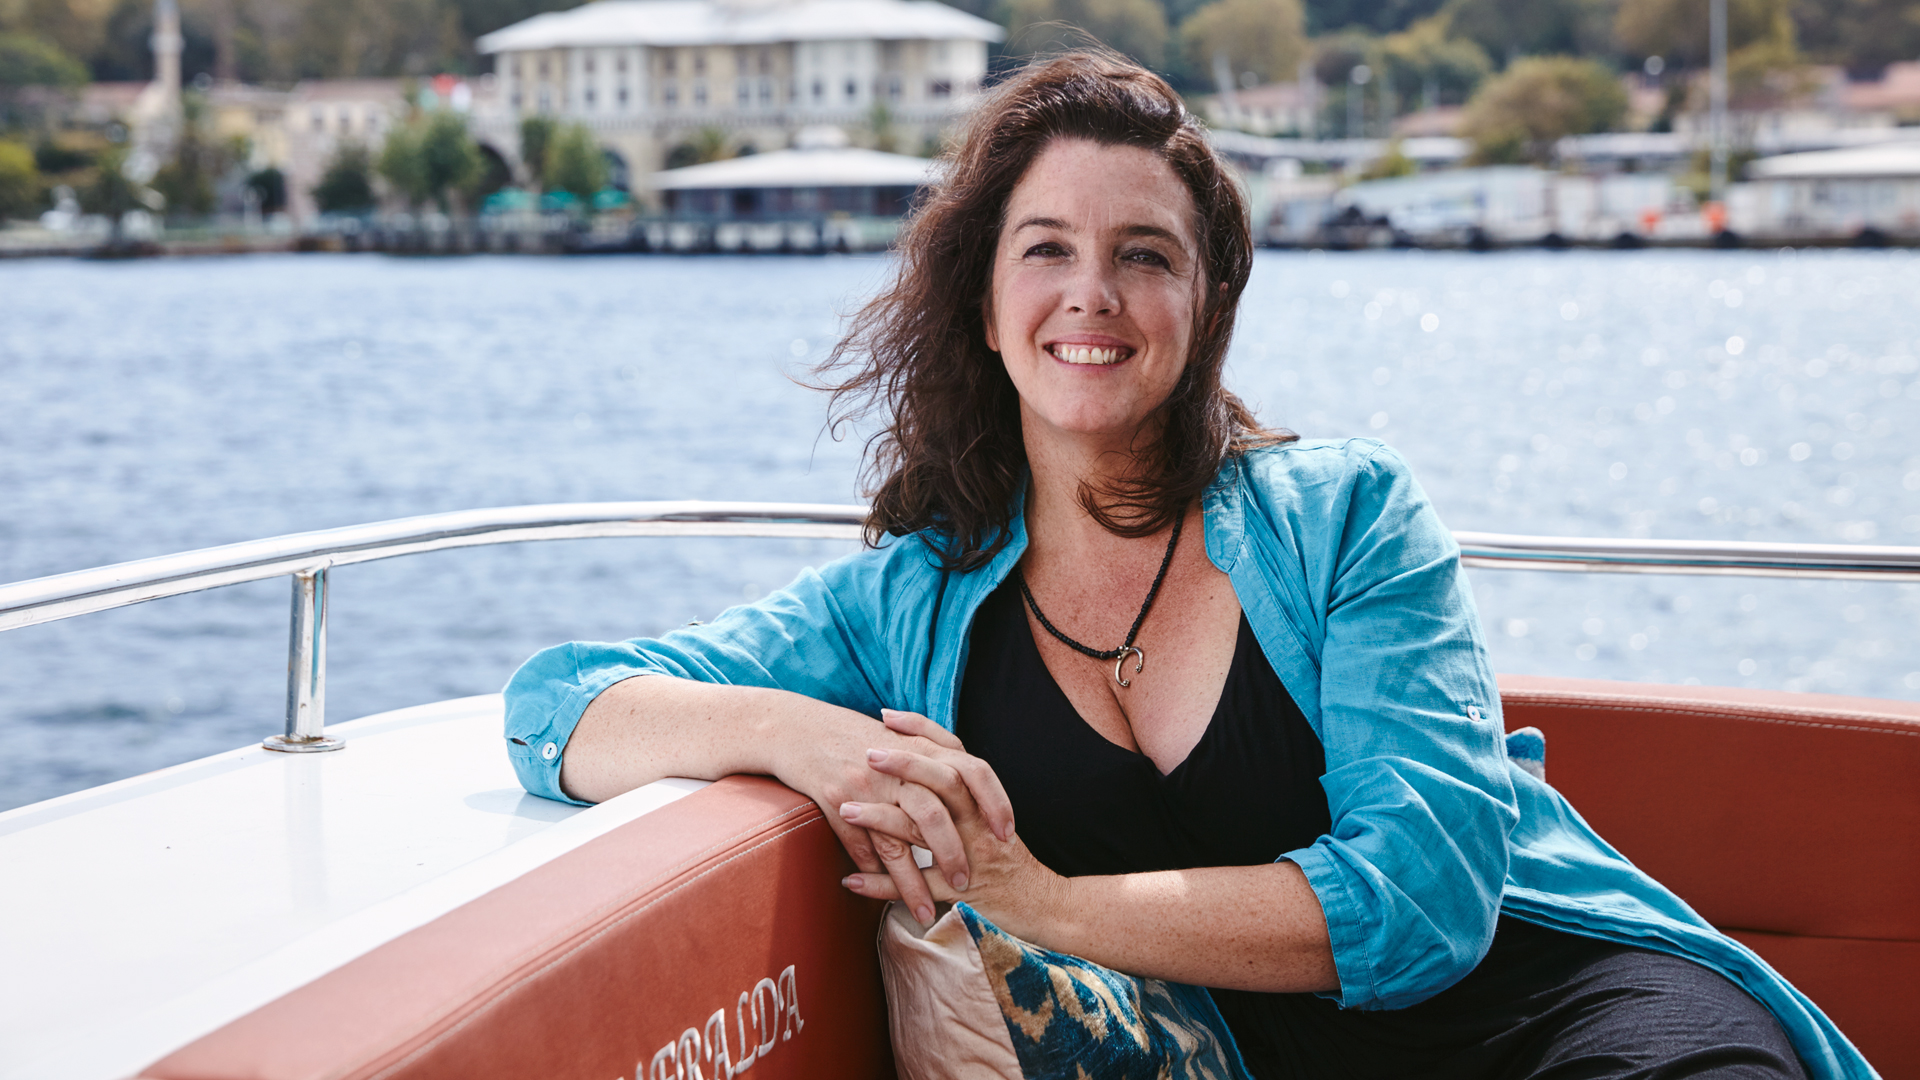 Some of Bettany Hughes's private passions were discovered during her travels as a historian.